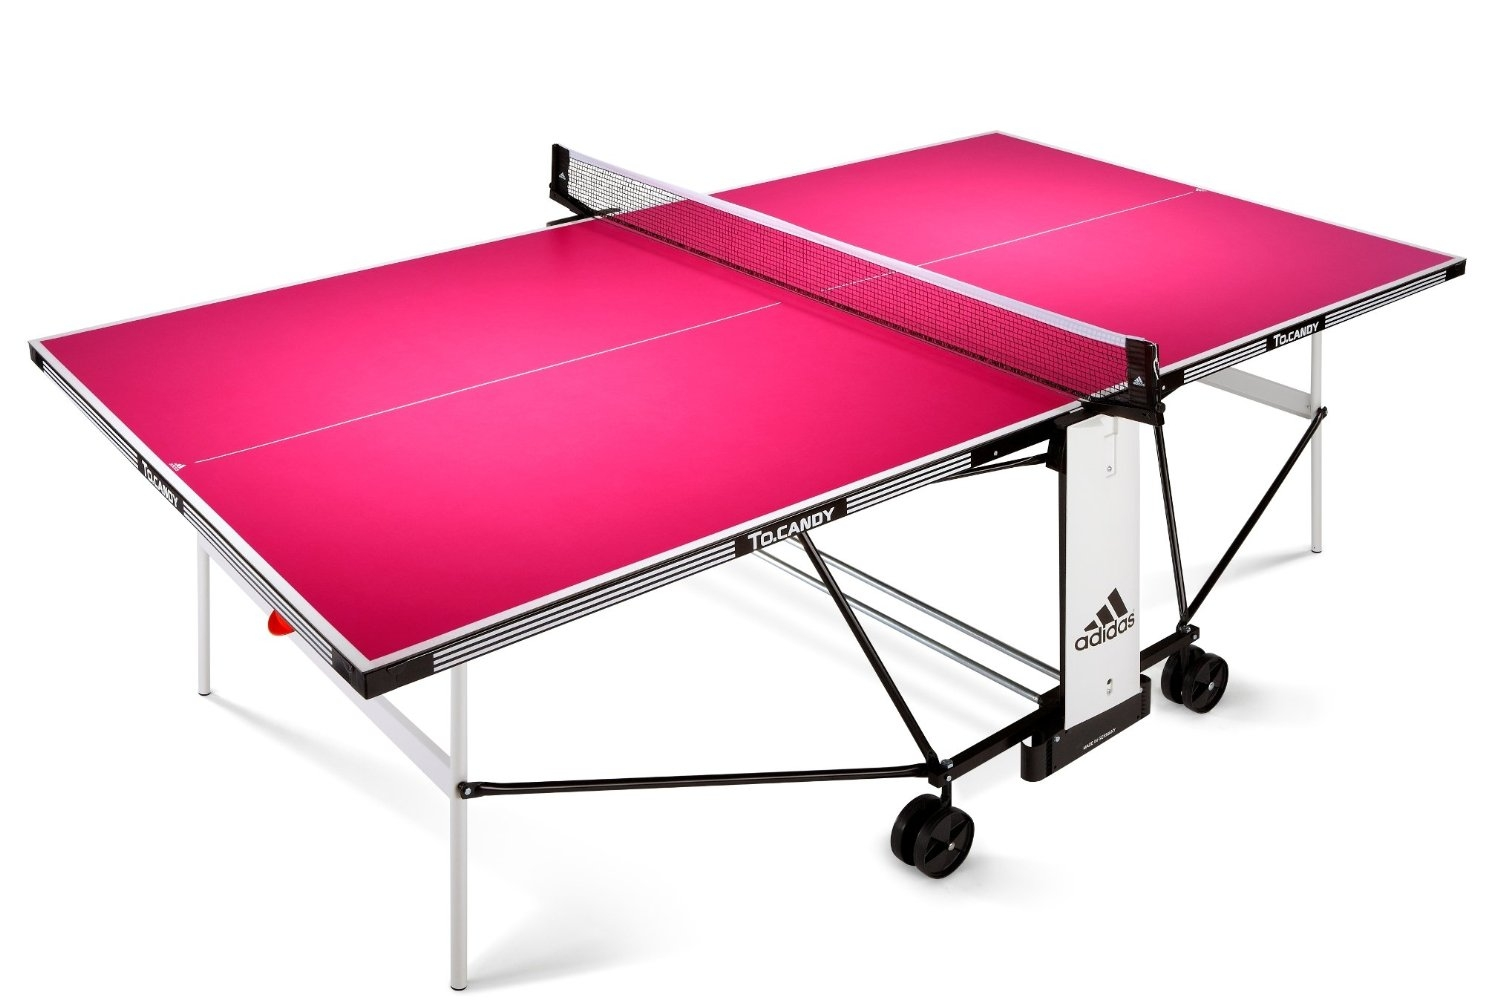 les tendances table de ping pong d 39 ext rieur adidas to candy. Black Bedroom Furniture Sets. Home Design Ideas